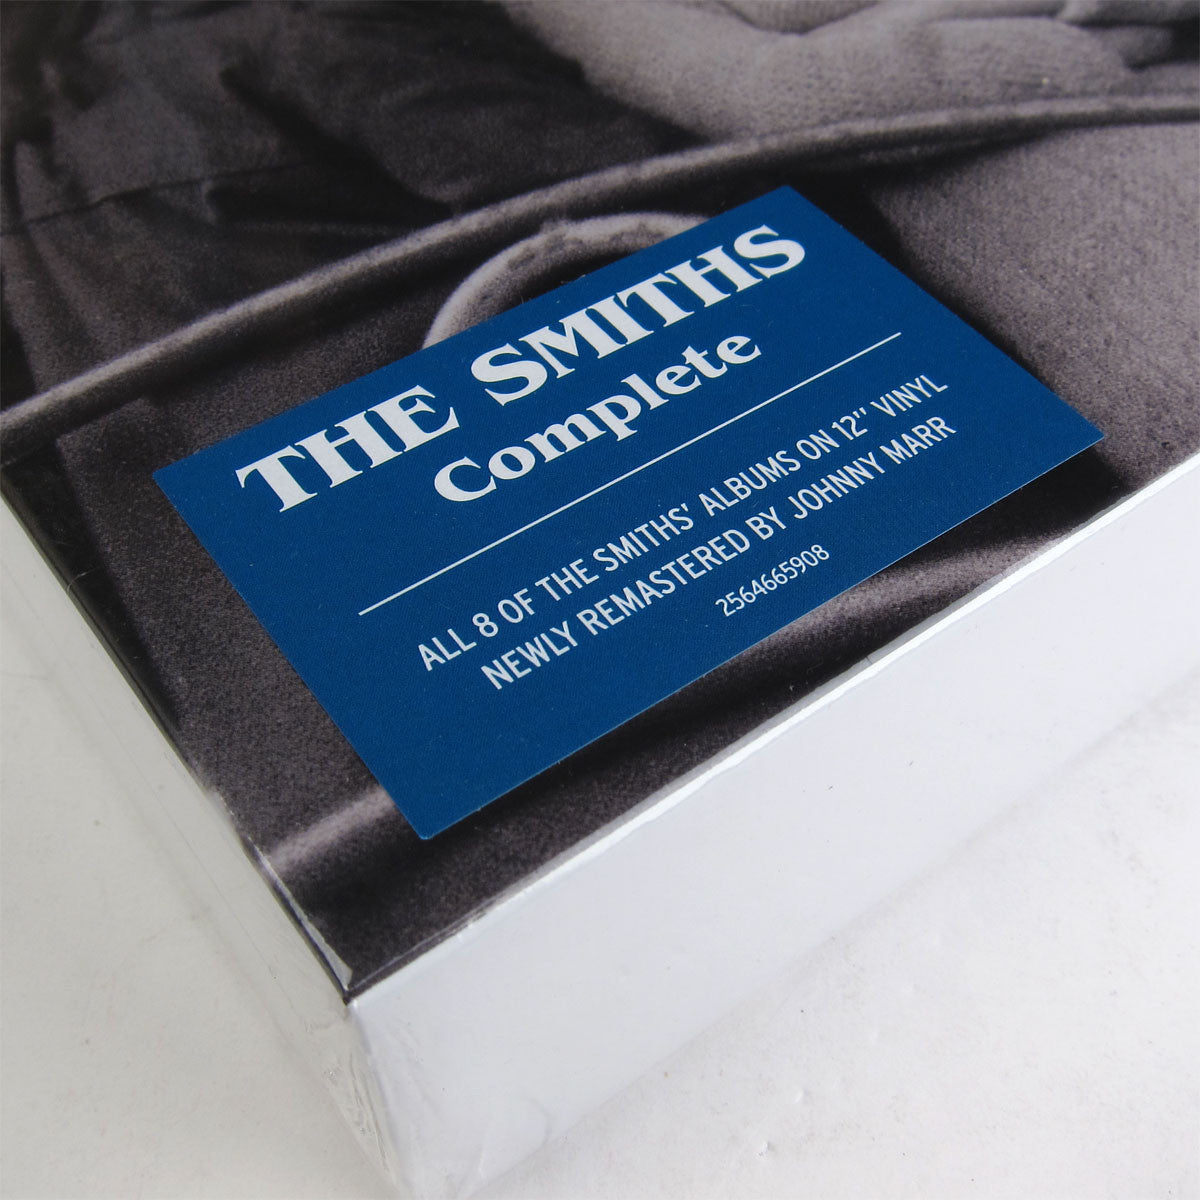 The Smiths: Complete - 180g 11LP Vinyl Box Set sticker